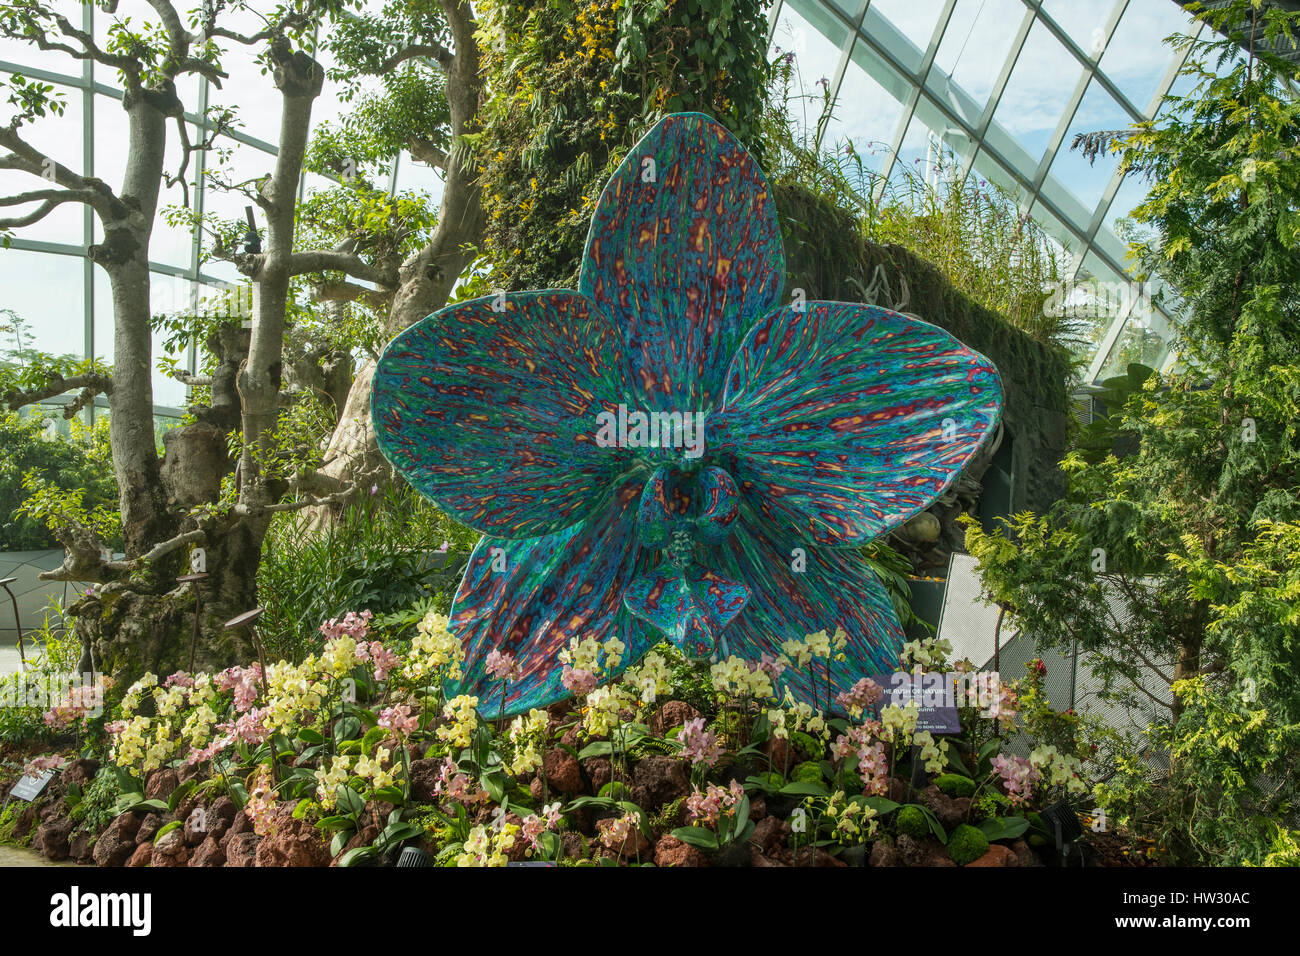 'The Rush of Nature' Sculpture in the Flower Dome, Gardens by the Bay, Singapore - Stock Image